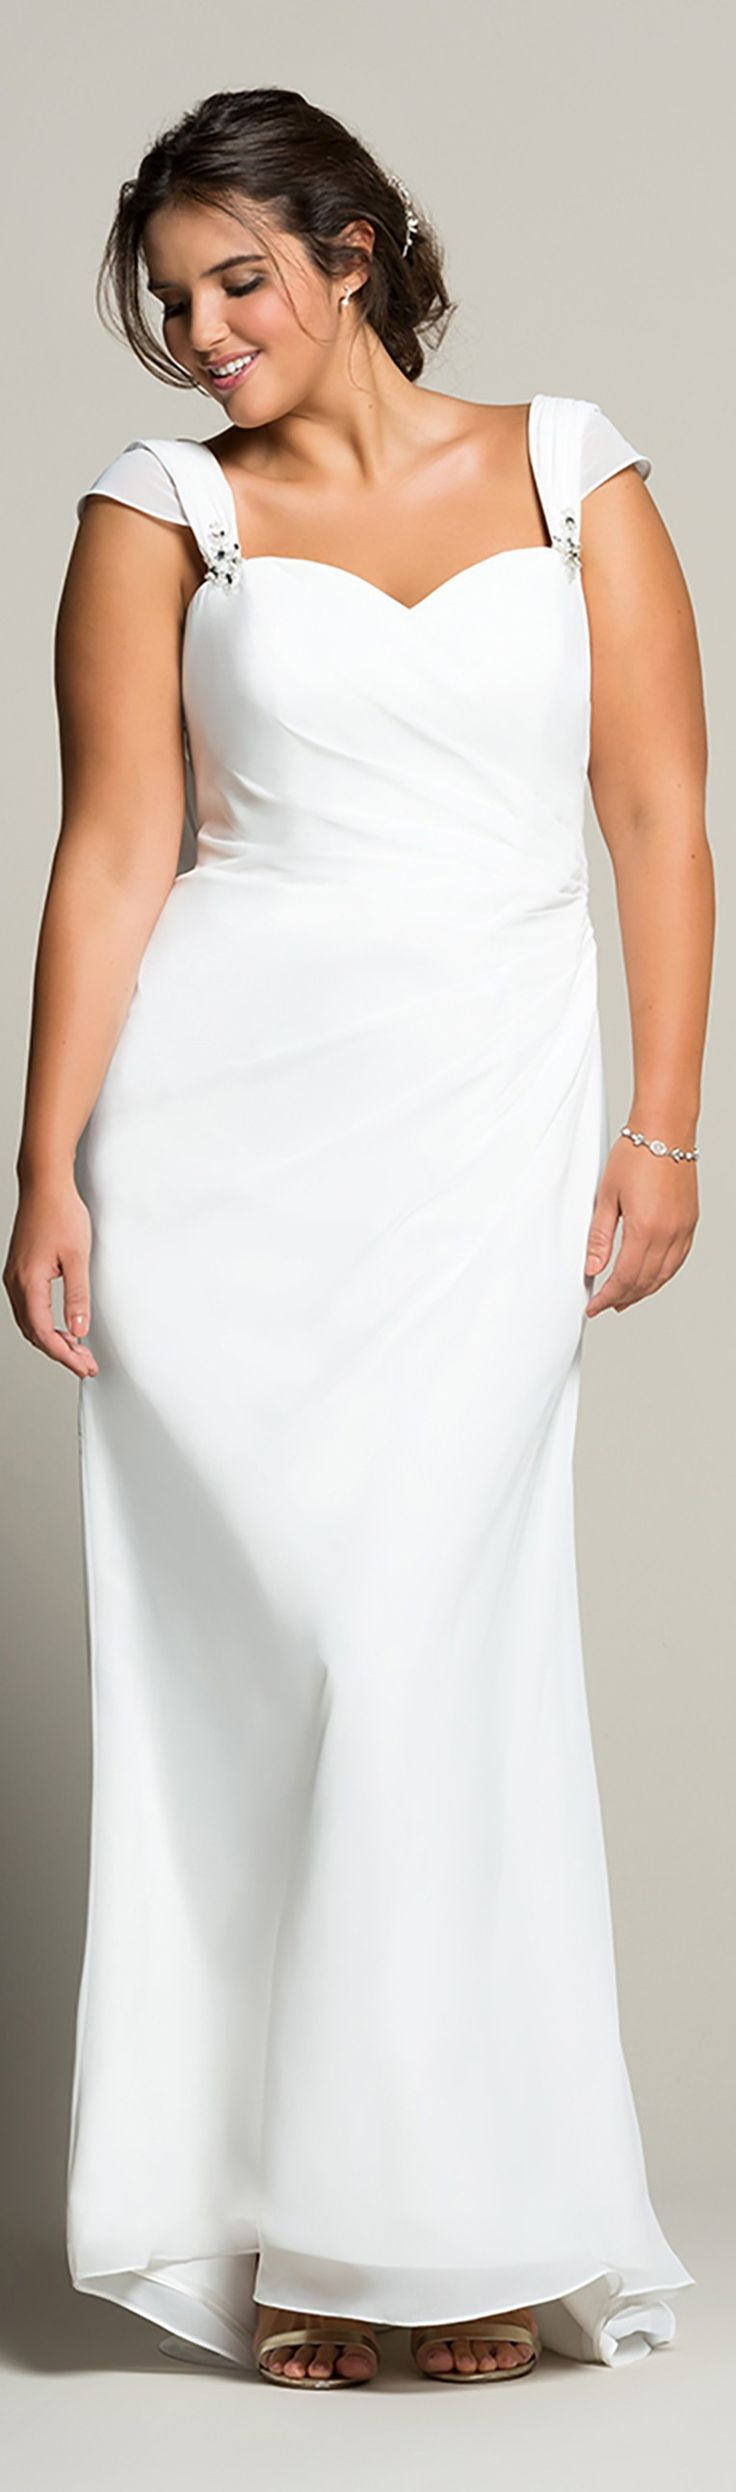 Casual wedding dress plus size. Read article about wedding fashion for indie brides: http://www.boomerinas.com/2016/01/24/casual-wedding-dresses-for-second-marriages-9-tips/